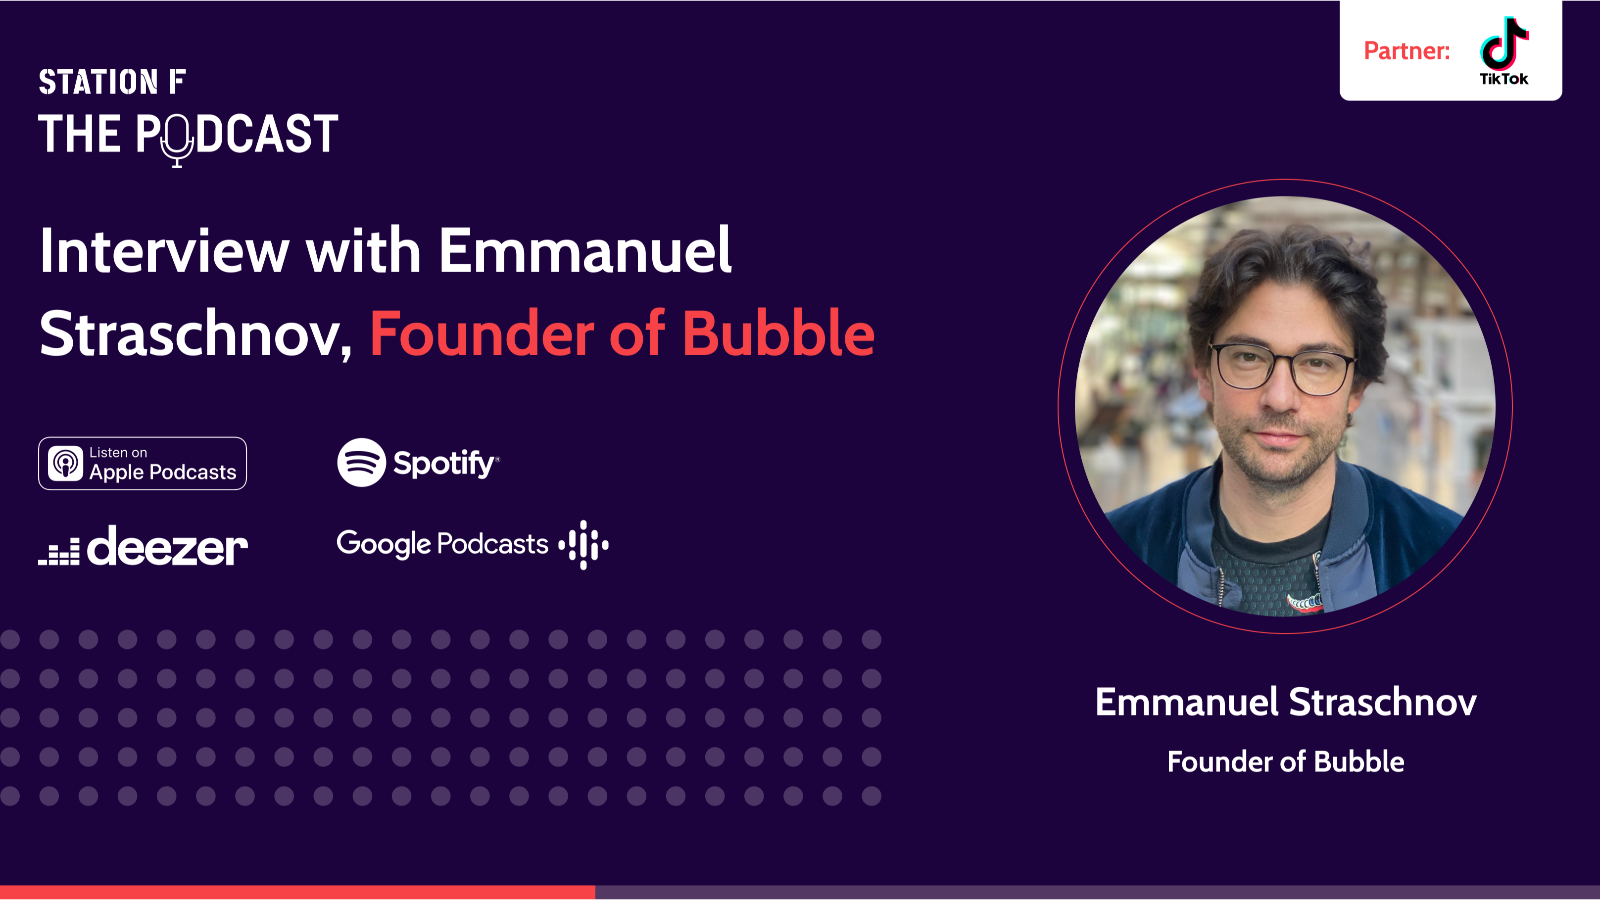 Thumbnail for news article called Interview with Emmanuel Straschnov, Founder of Bubble